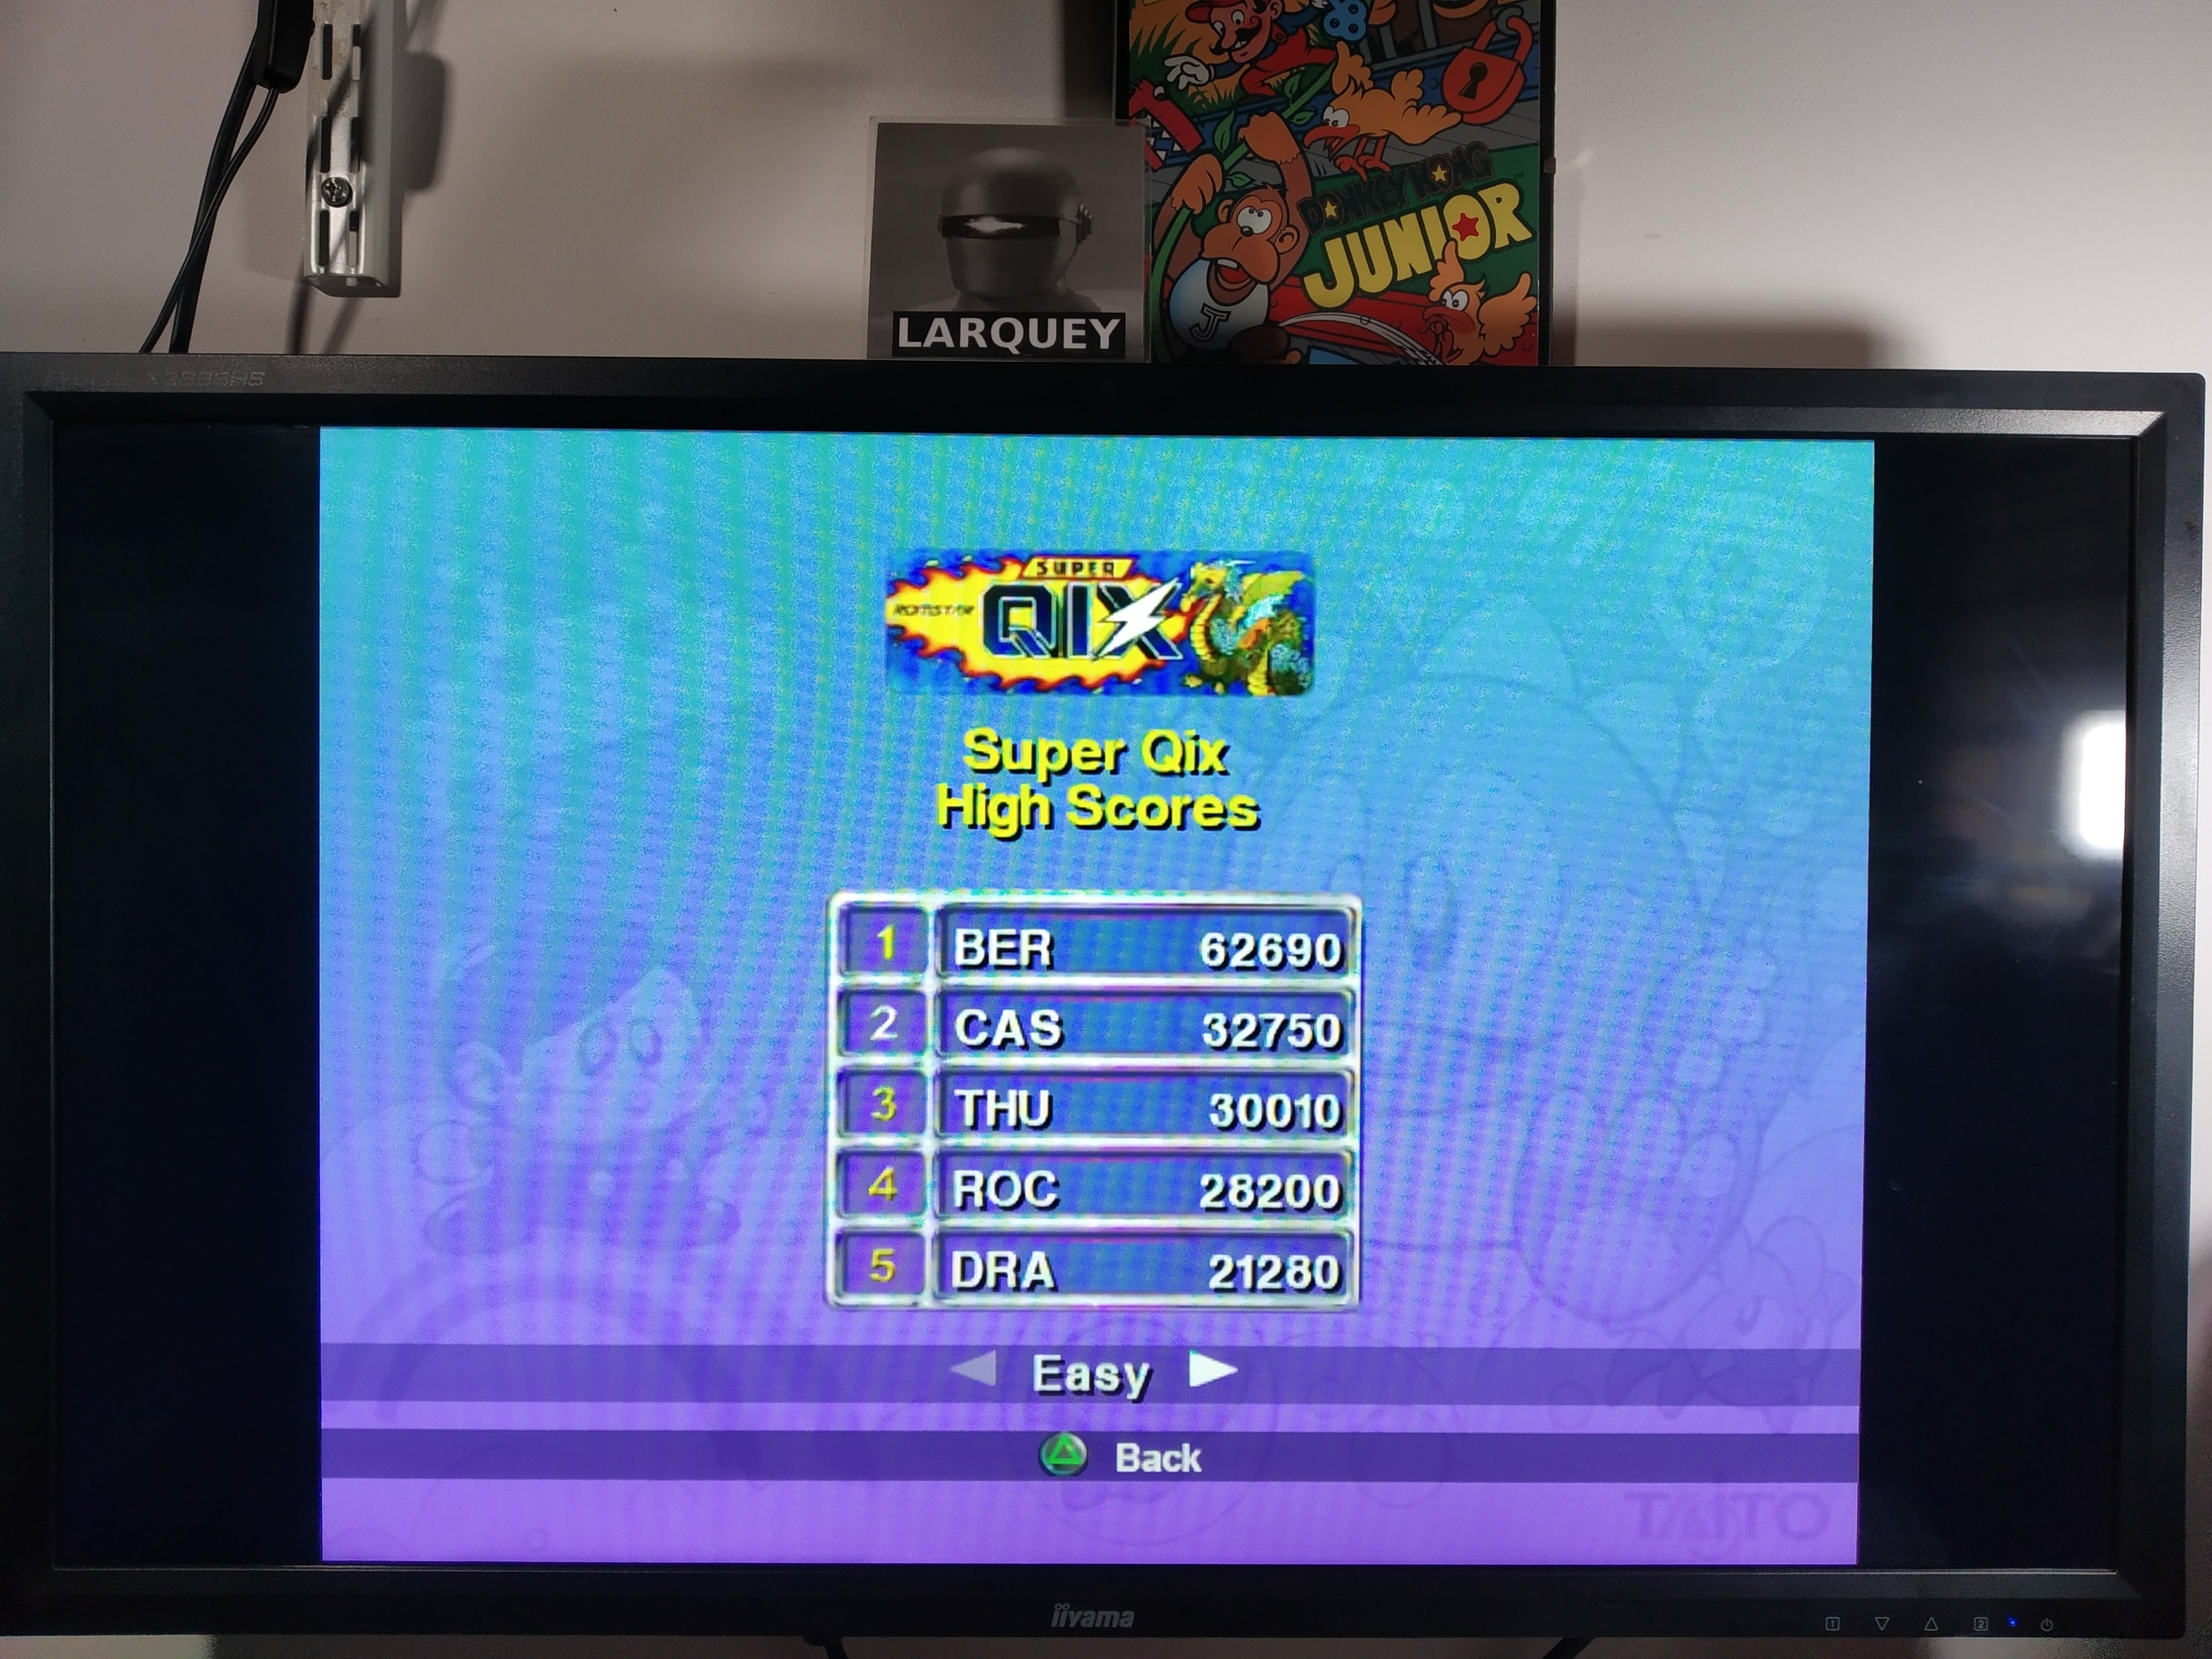 Larquey: Taito Legends: Super Qix [Easy] (Playstation 2 Emulated) 62,690 points on 2020-07-31 12:36:40